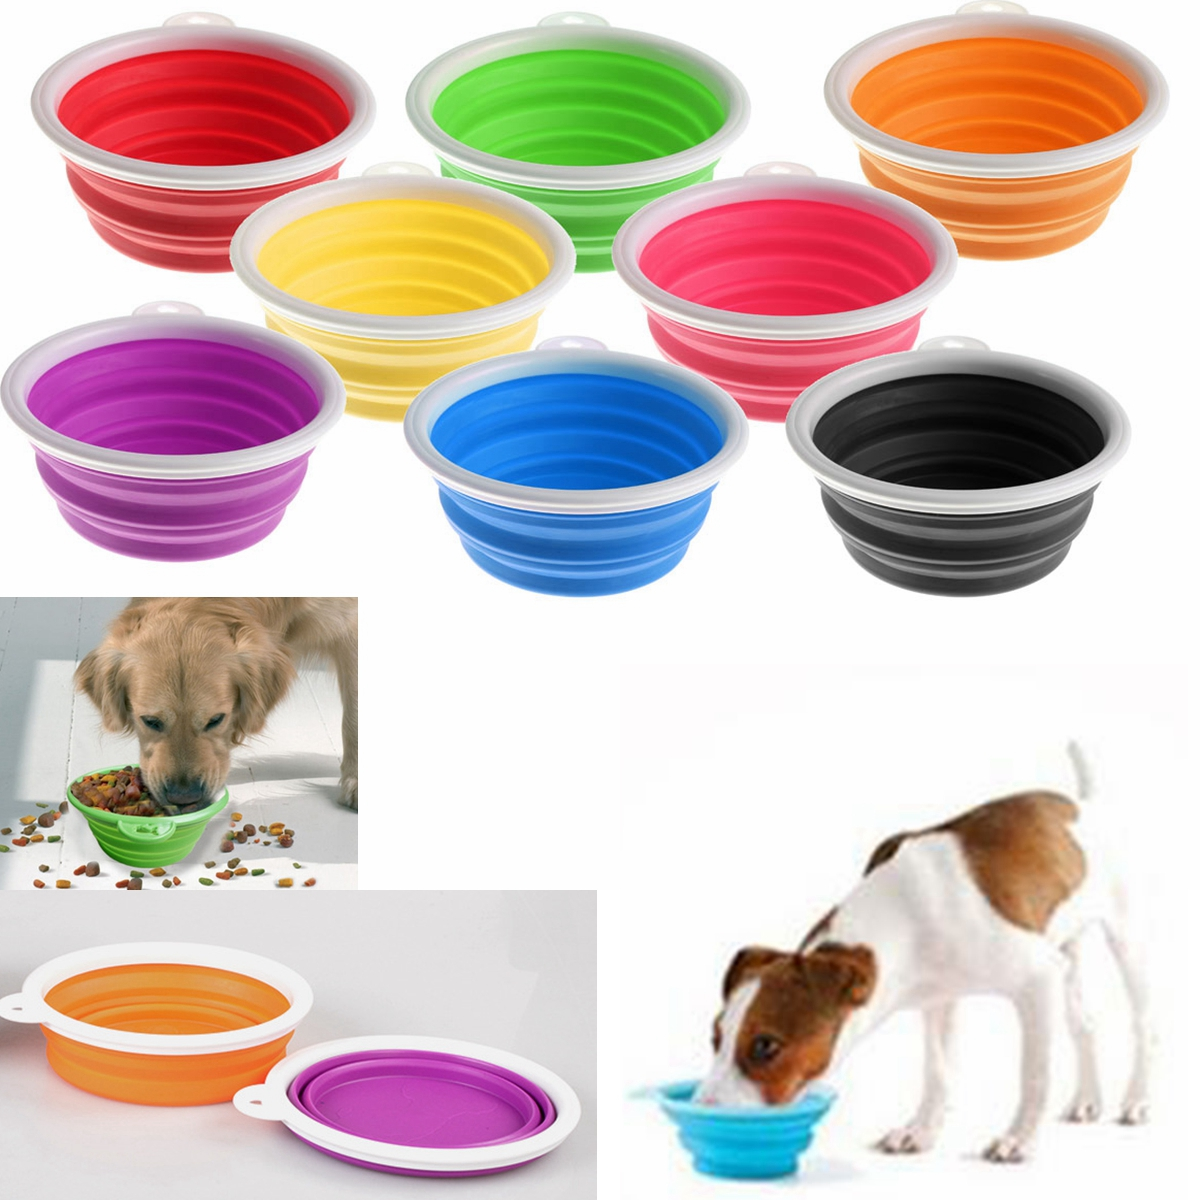 Collapsible Silicone Pet Bowl, Expandable Cup Dish For Pet Dog/Cat Food Water Feeding Portable Travel Bowl